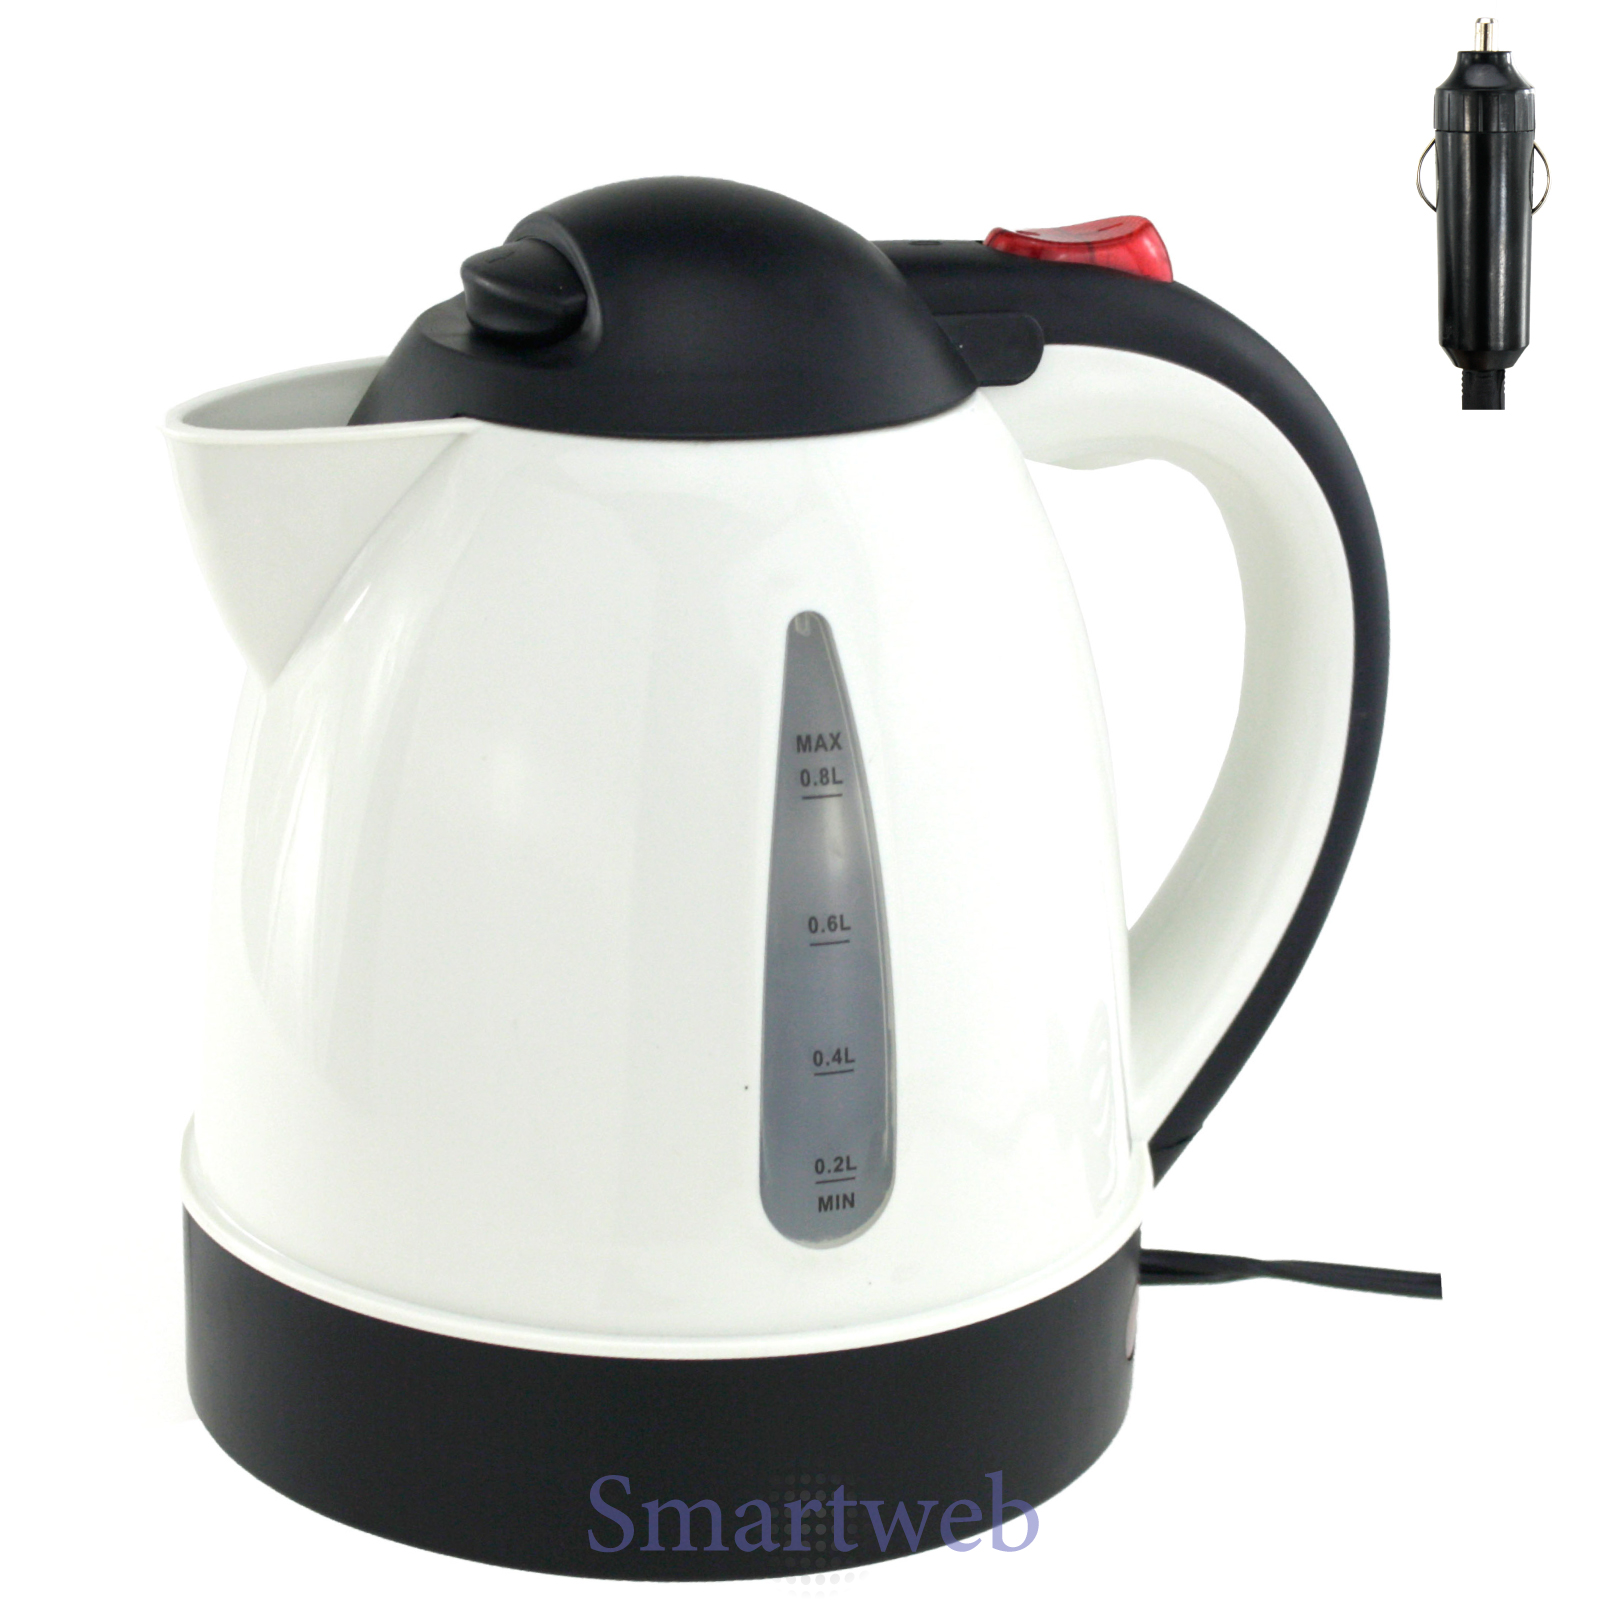 Coffee Maker Water Boiler Oxone : car truck Water boiler electric kettle 12V Tea pot Coffee maker Camping cooker eBay